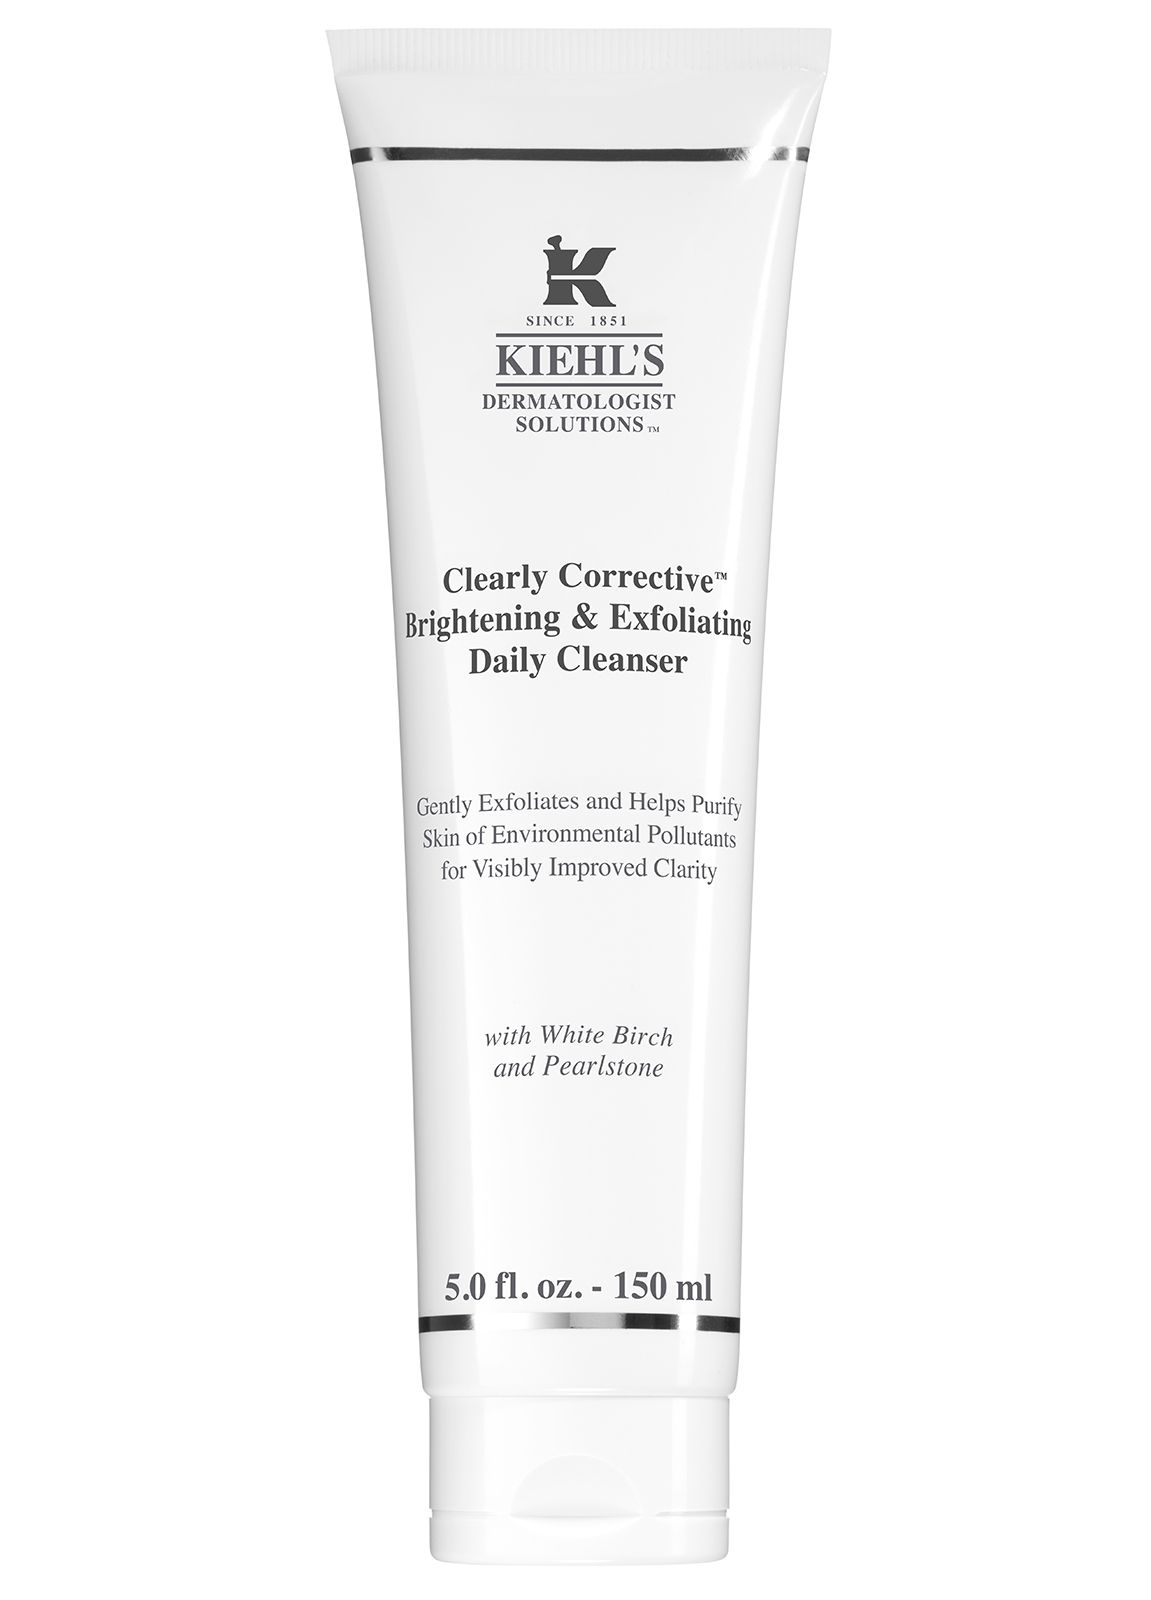 Clearly_Corrective_Brightening_Exfoliating_Daily_Cleanser_3605971634321_150ml_PV1